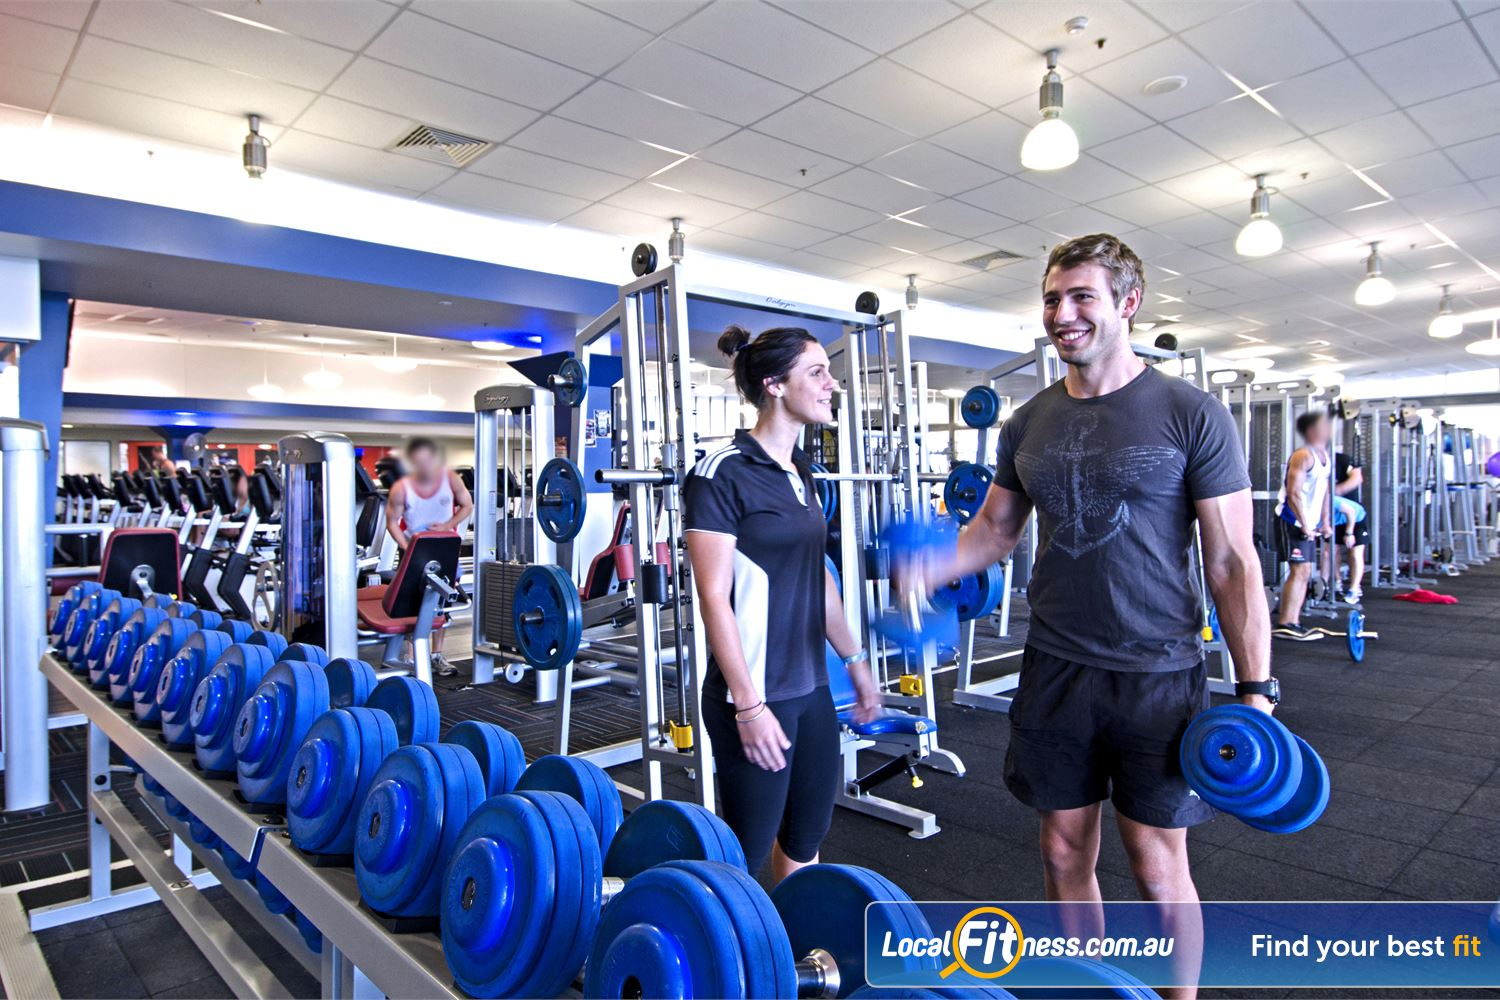 Goodlife Health Clubs Near Aspley Goodlife Chermside gym provides a comprehensive free-weights area.